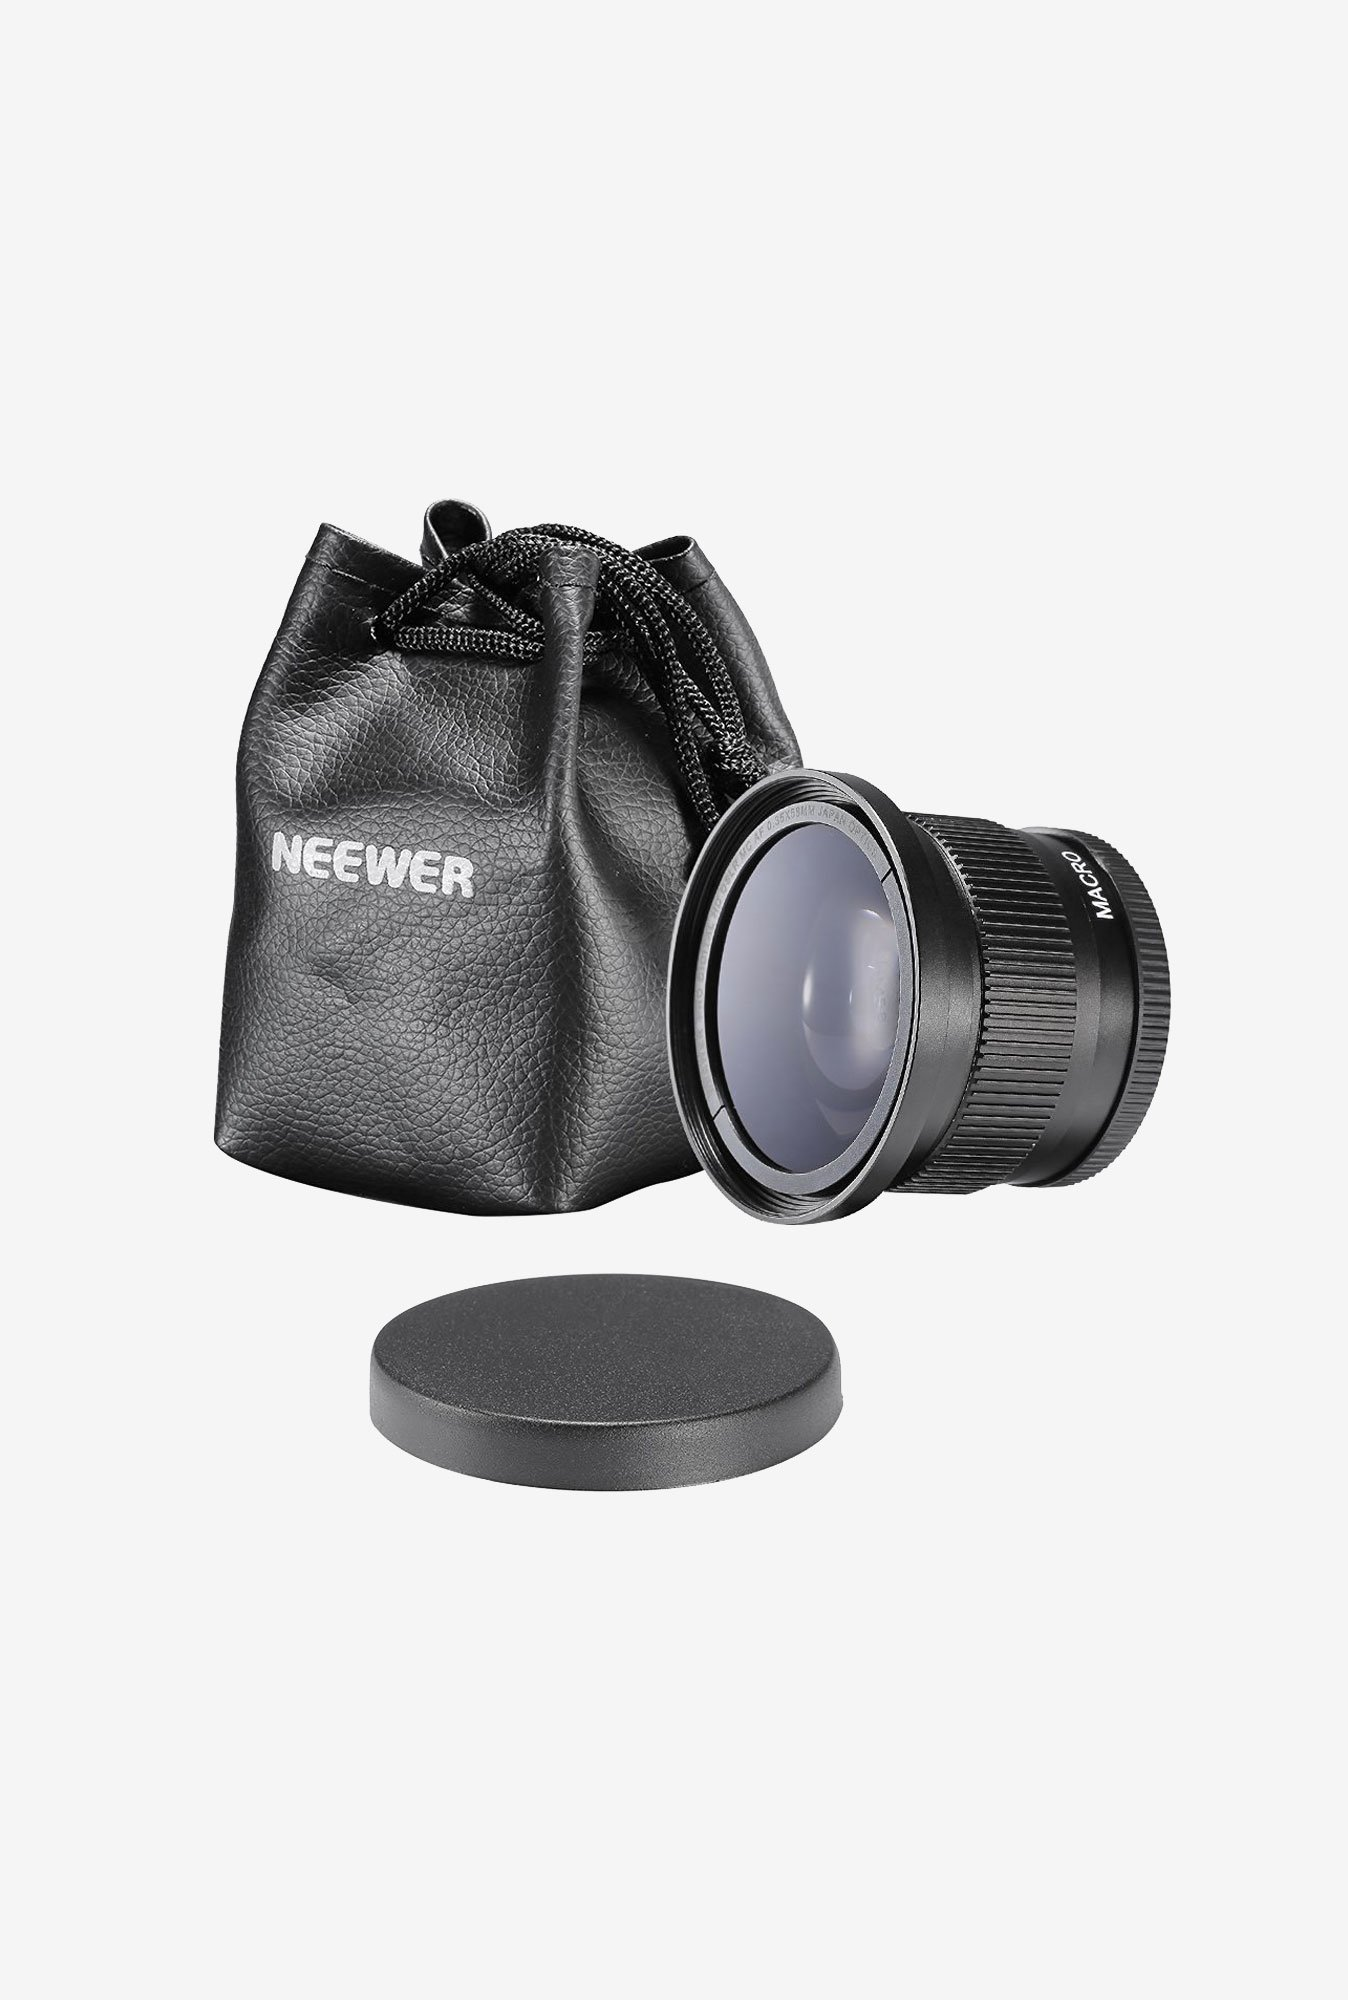 Neewer 58mm 0.35x Super Fisheye Wide Angle Lens (Black)